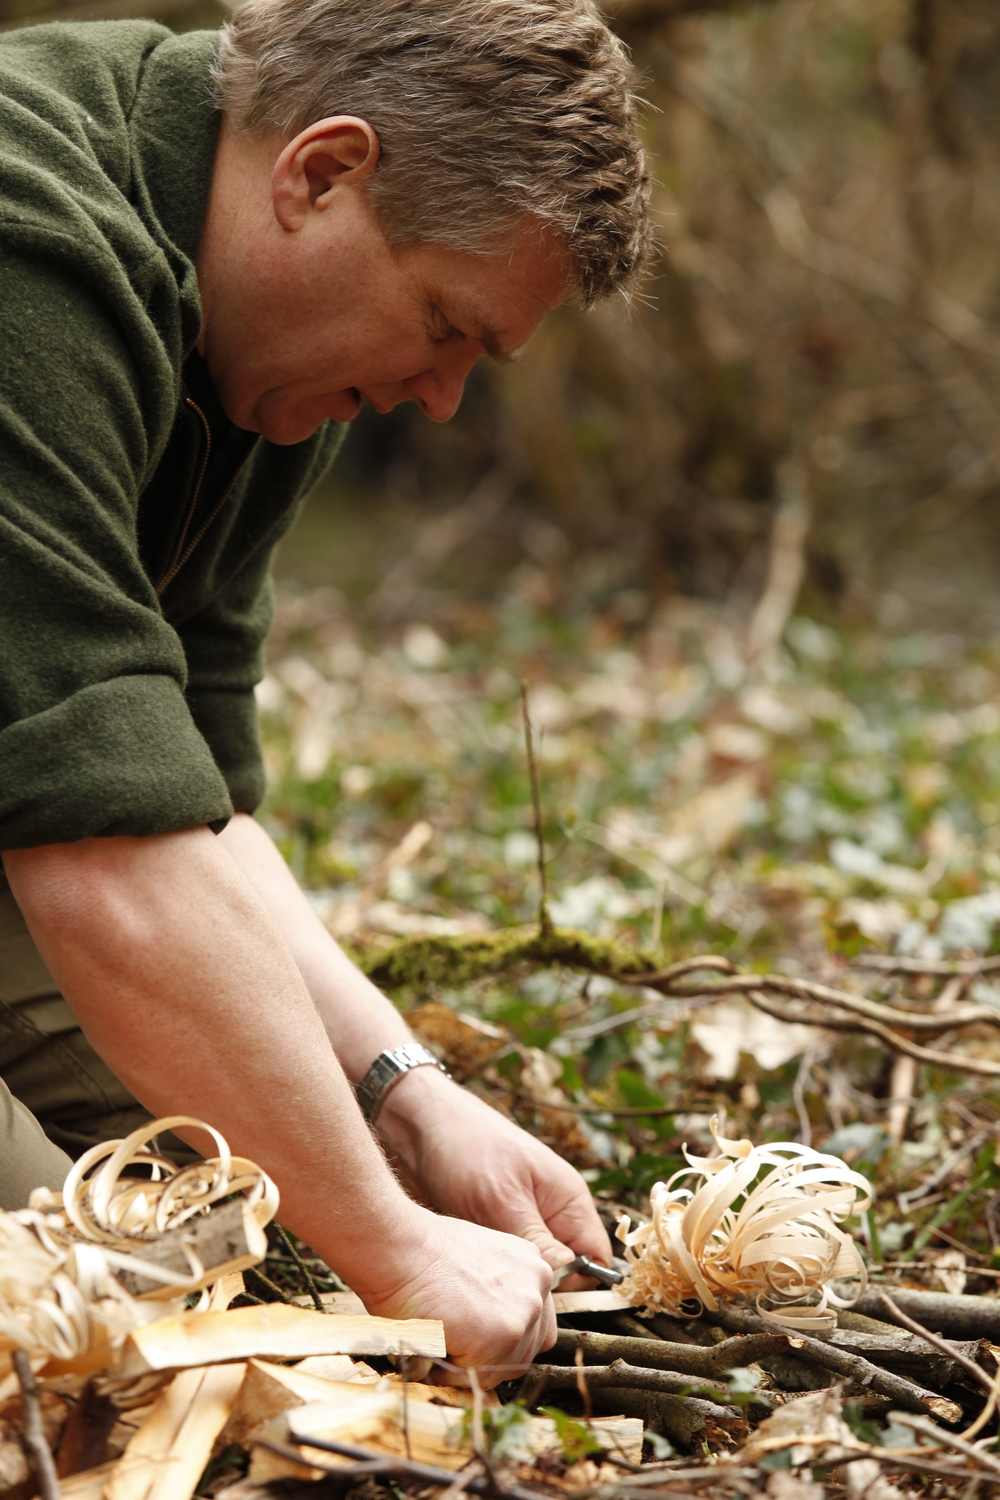 139Ray Mears March 2015 .JPG